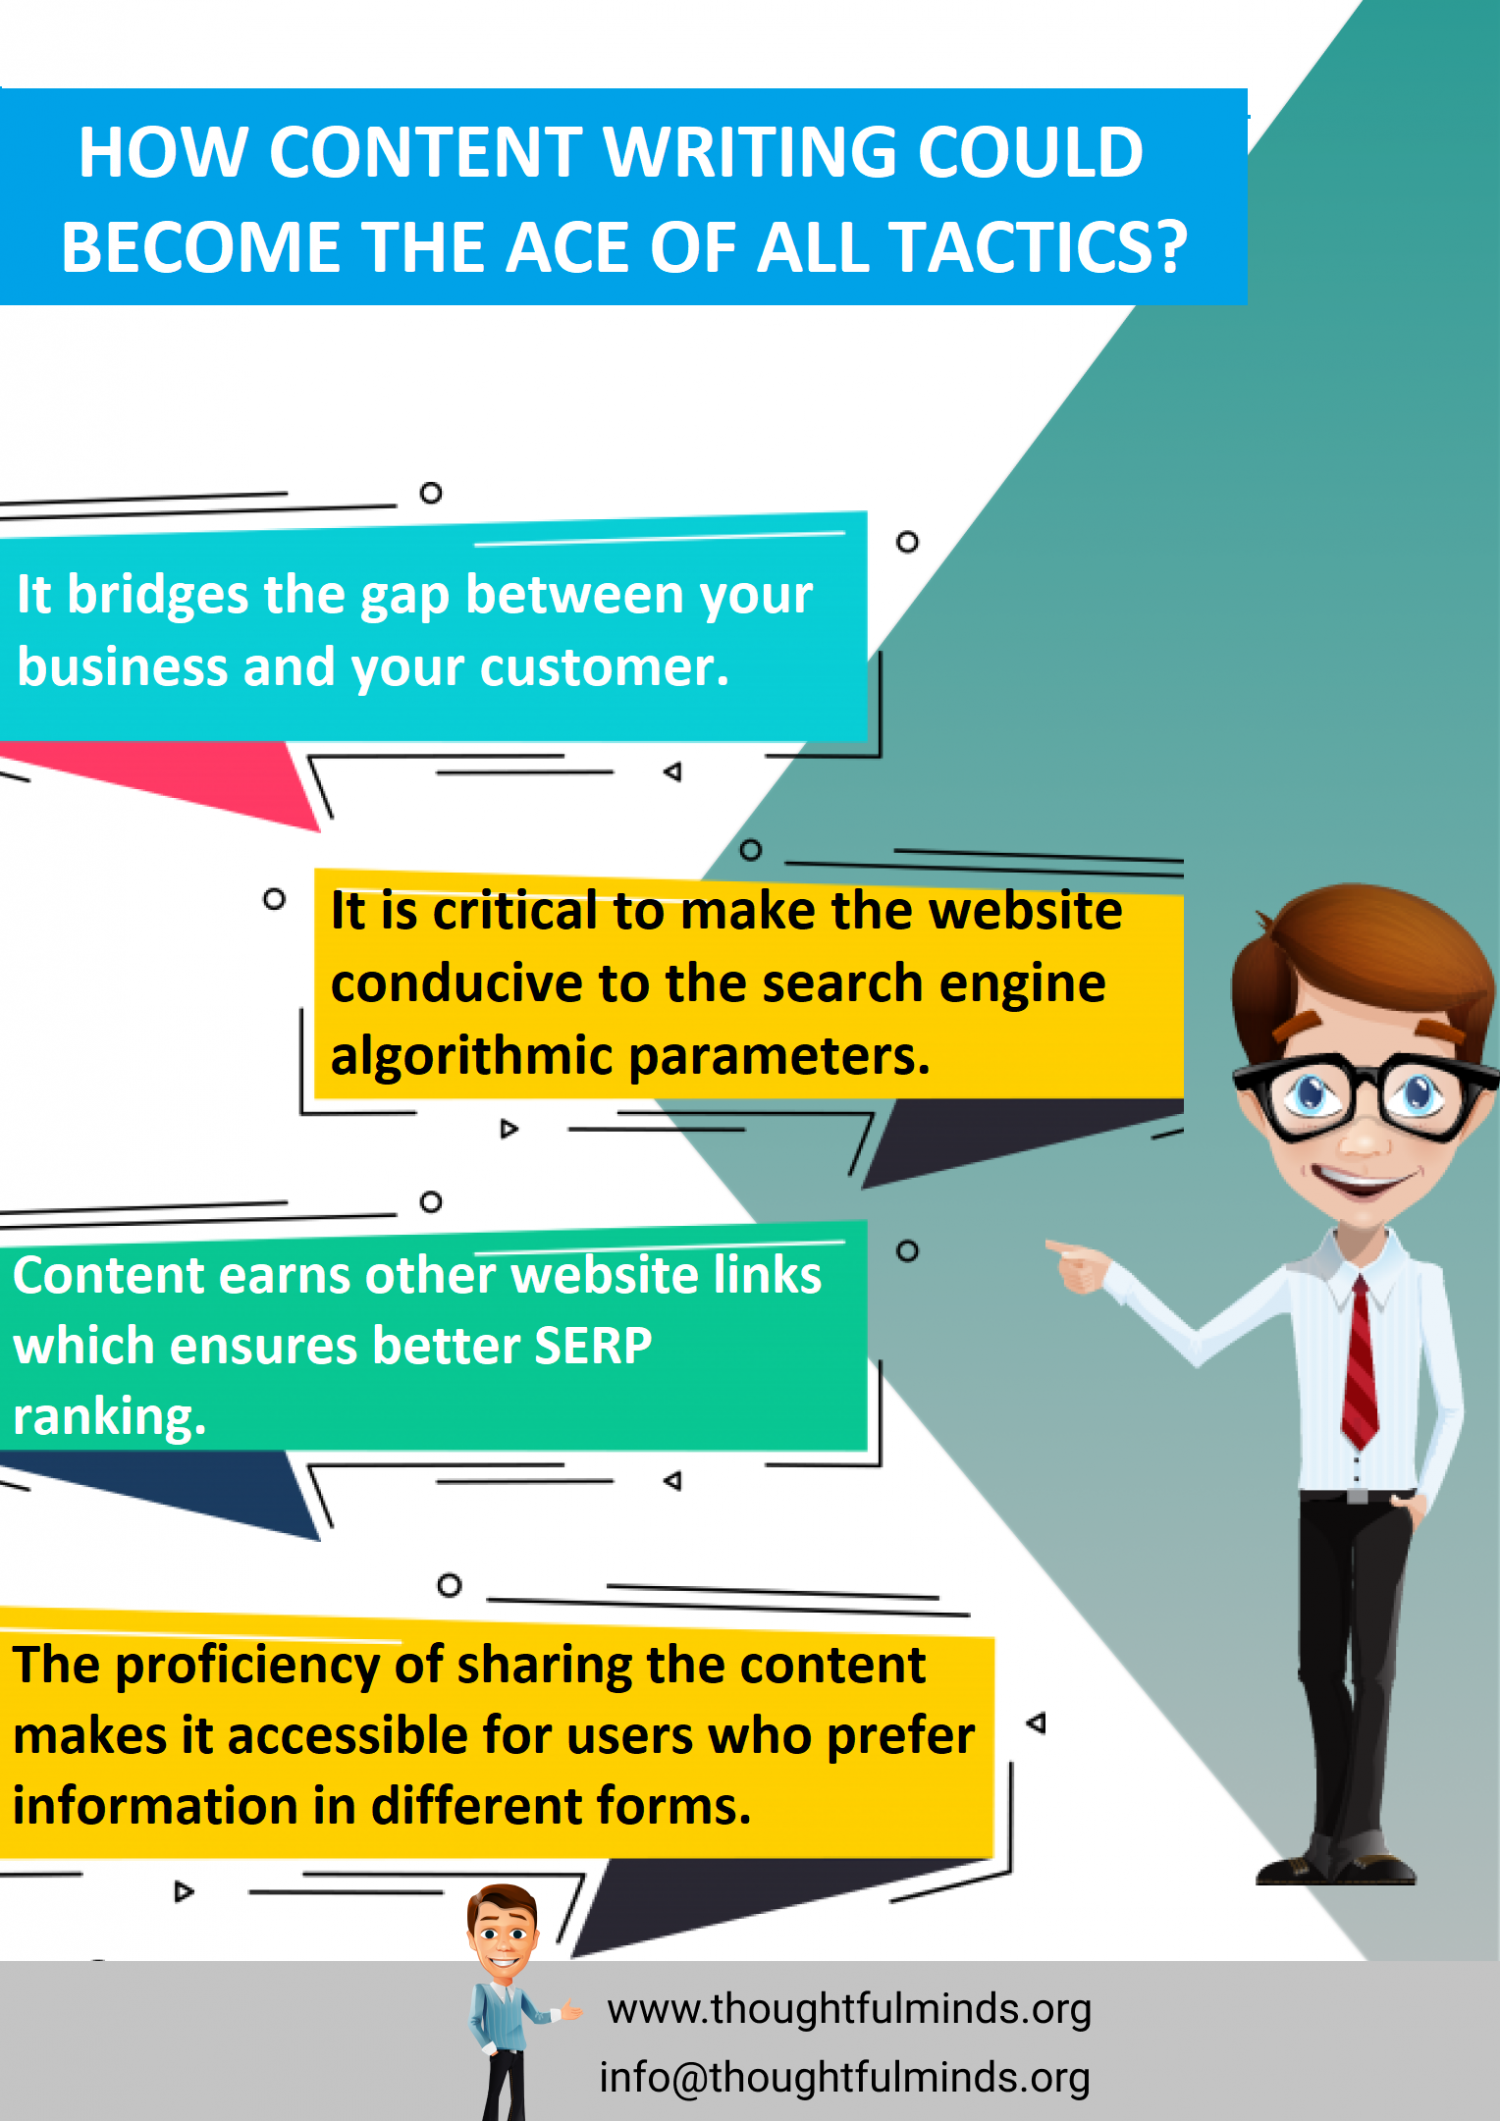 Why is content writing considered important for all tactics? Infographic